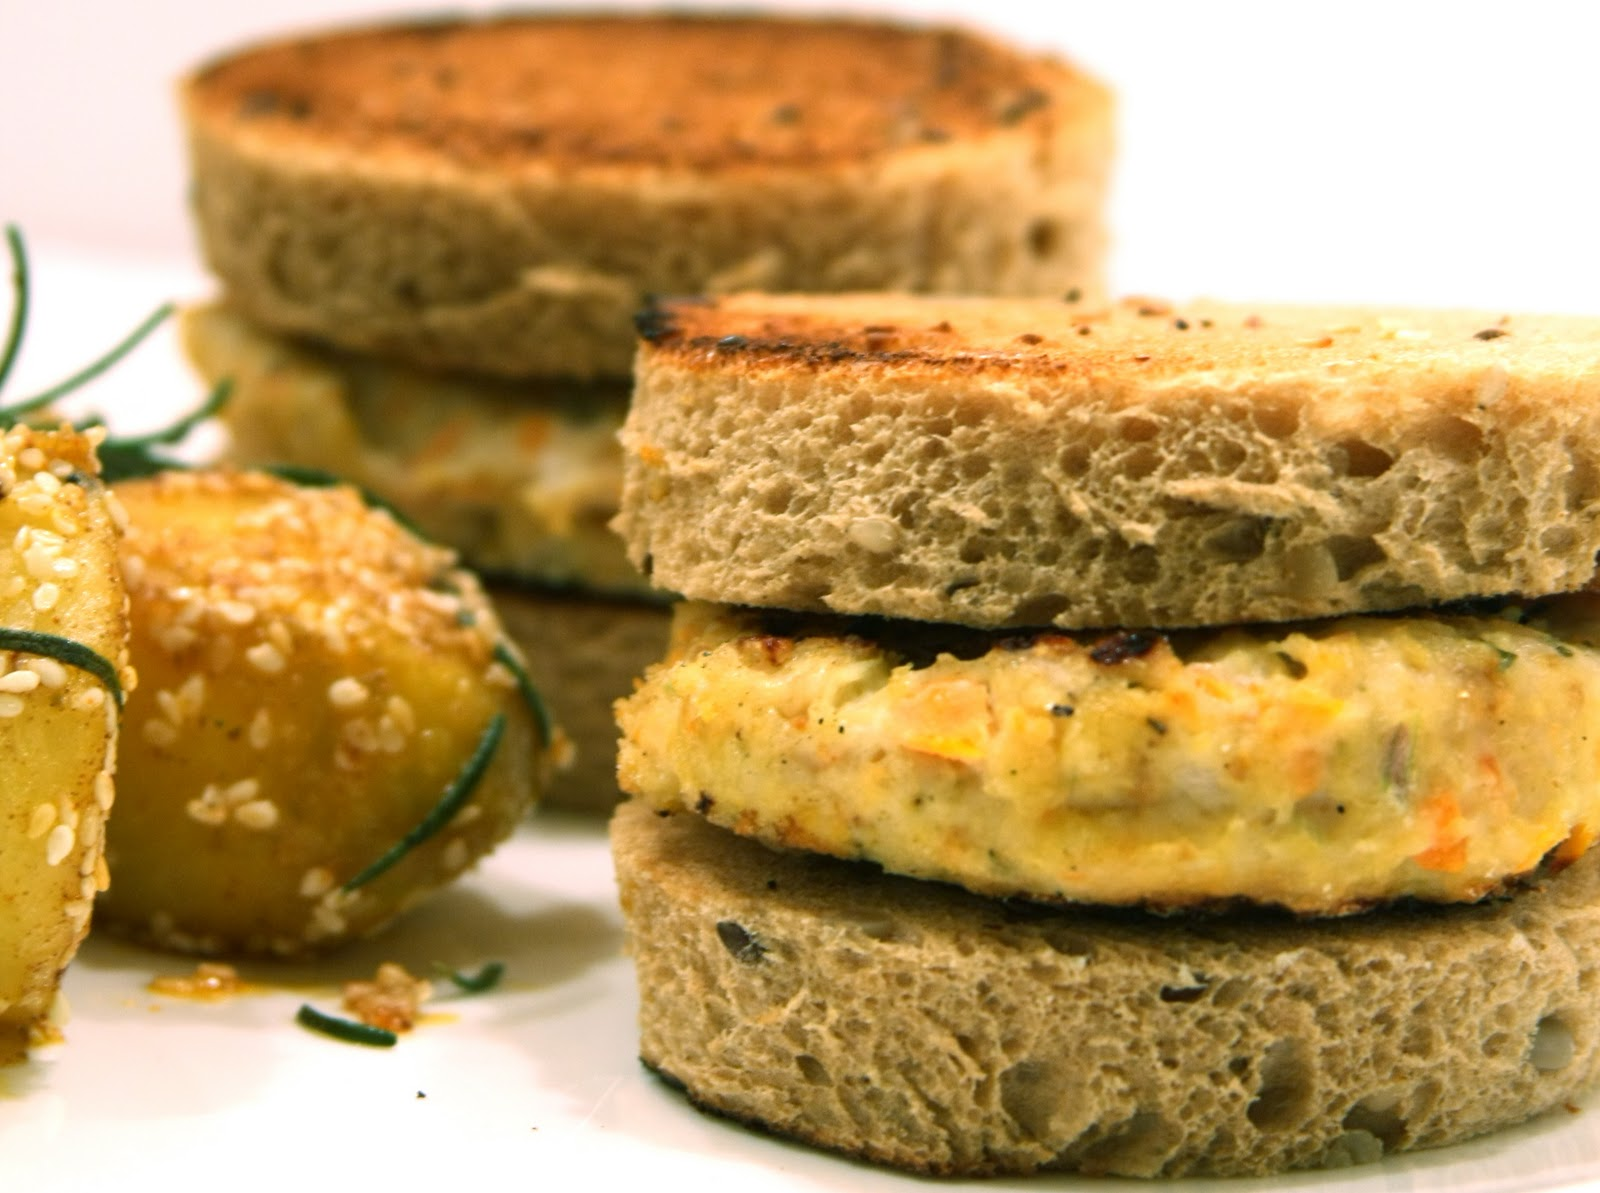 ... - Cooking & Traveling in Italy and Beyond: Chicken Parmesan Burgers